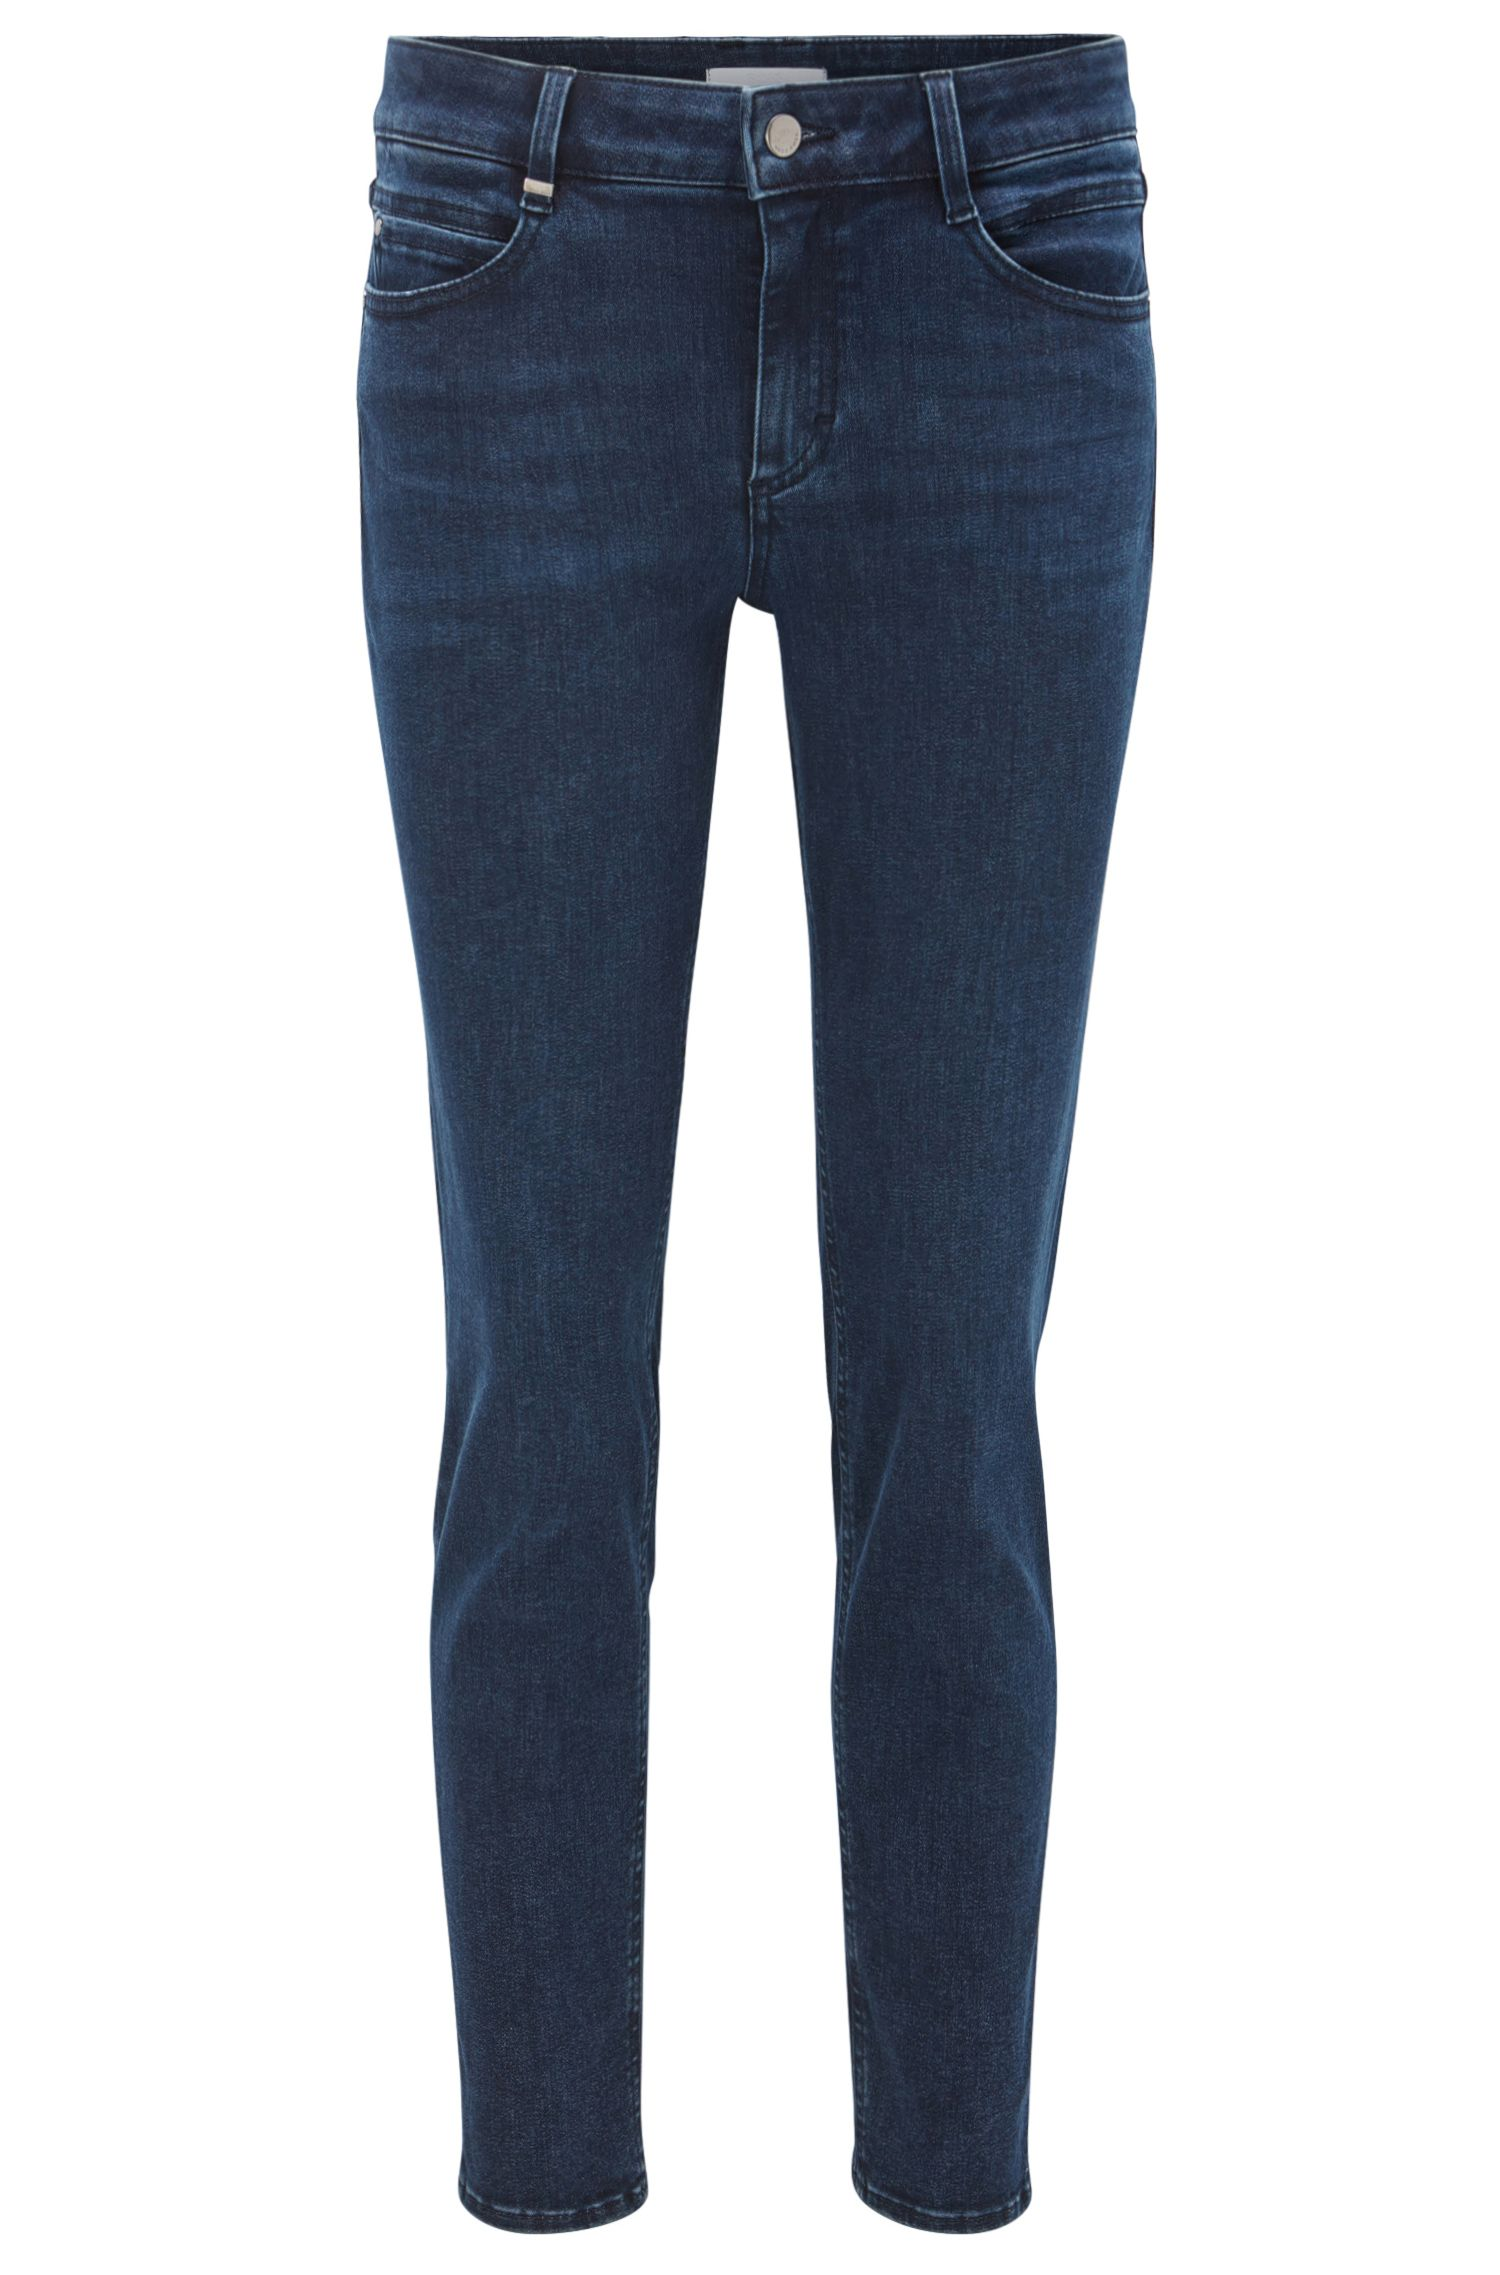 Regular-Fit Jeans aus strukturiertem Stretch Denim